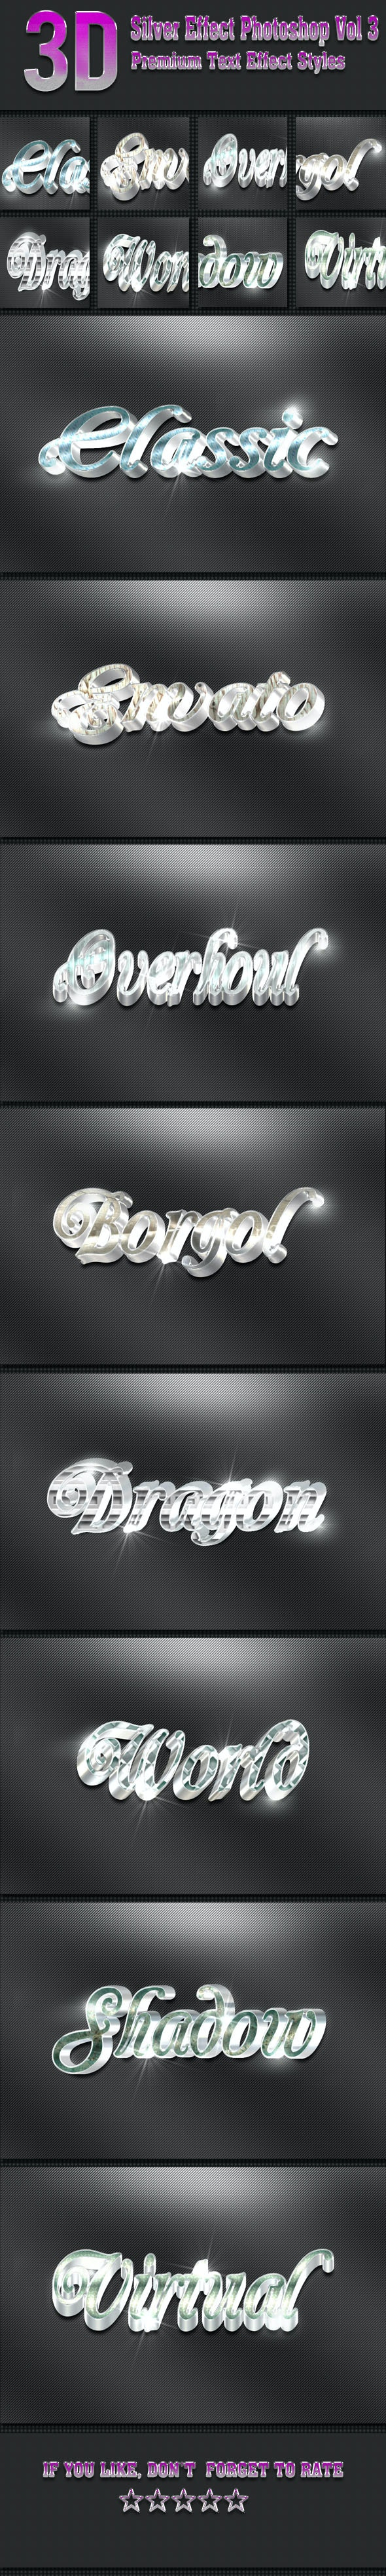 3D Silver Effect Photoshop Vol 3 - Text Effects Styles